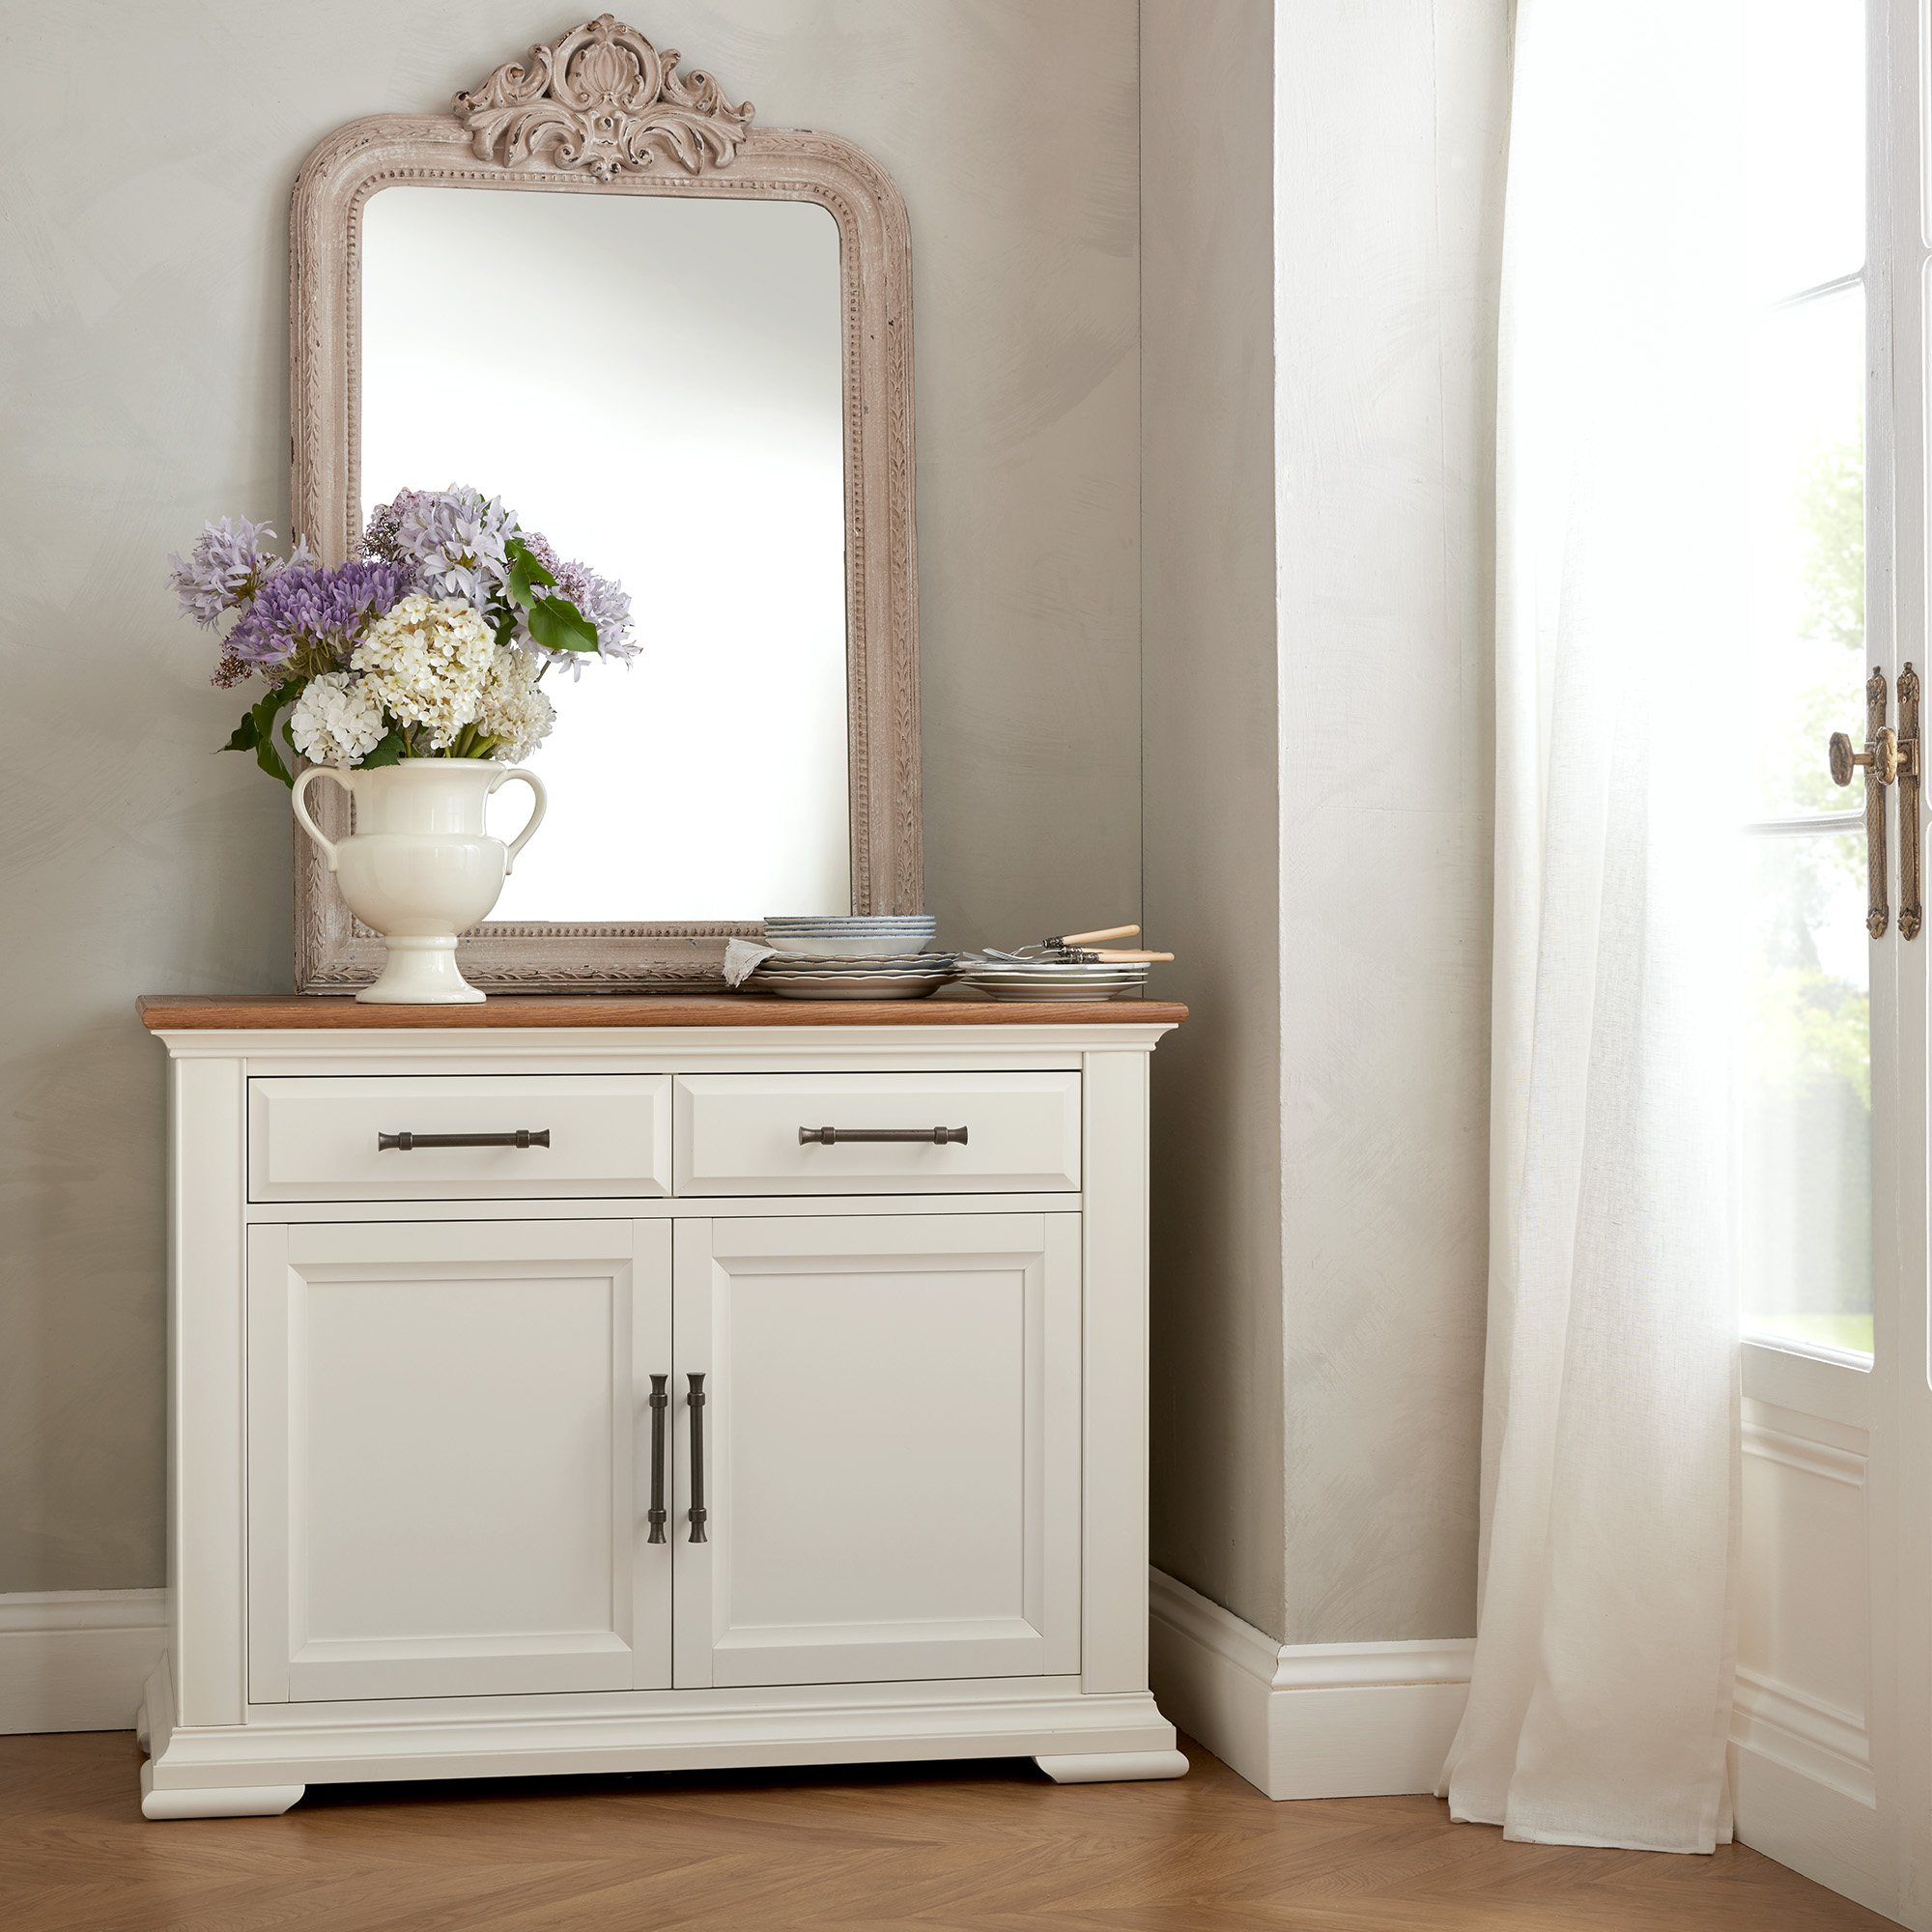 HIGHLAND 2DOOR SIDEBOARD